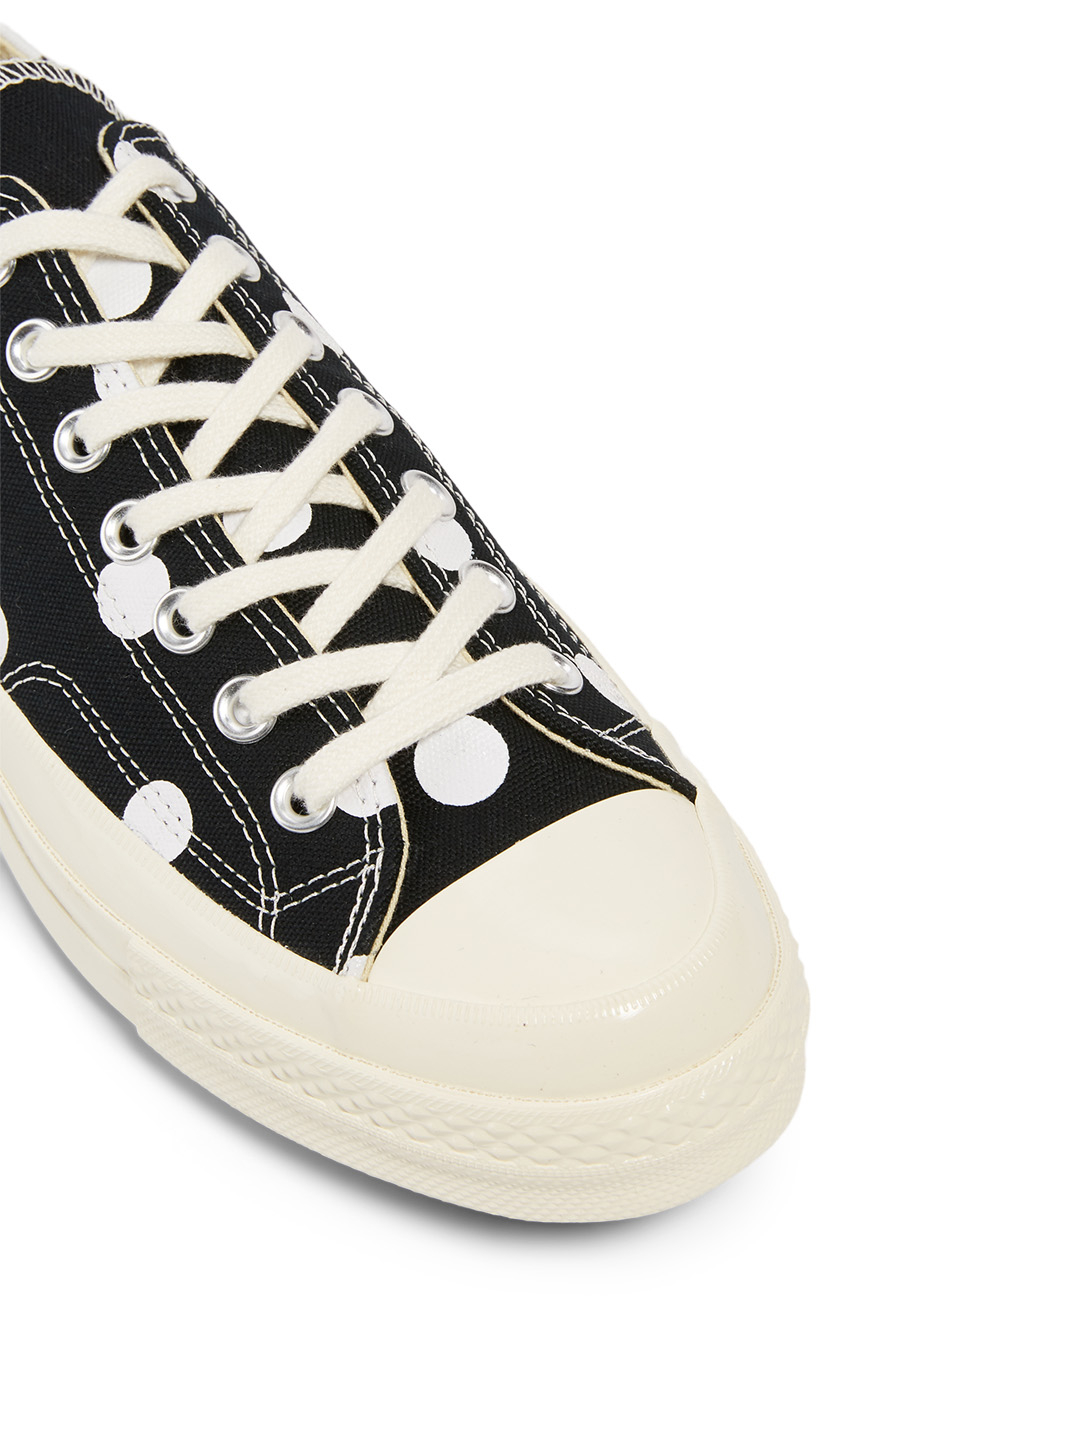 COMME DES GARÇONS PLAY CONVERSE X CDG PLAY Chuck Taylor '70 Sneakers In Polka Dot Men's Black